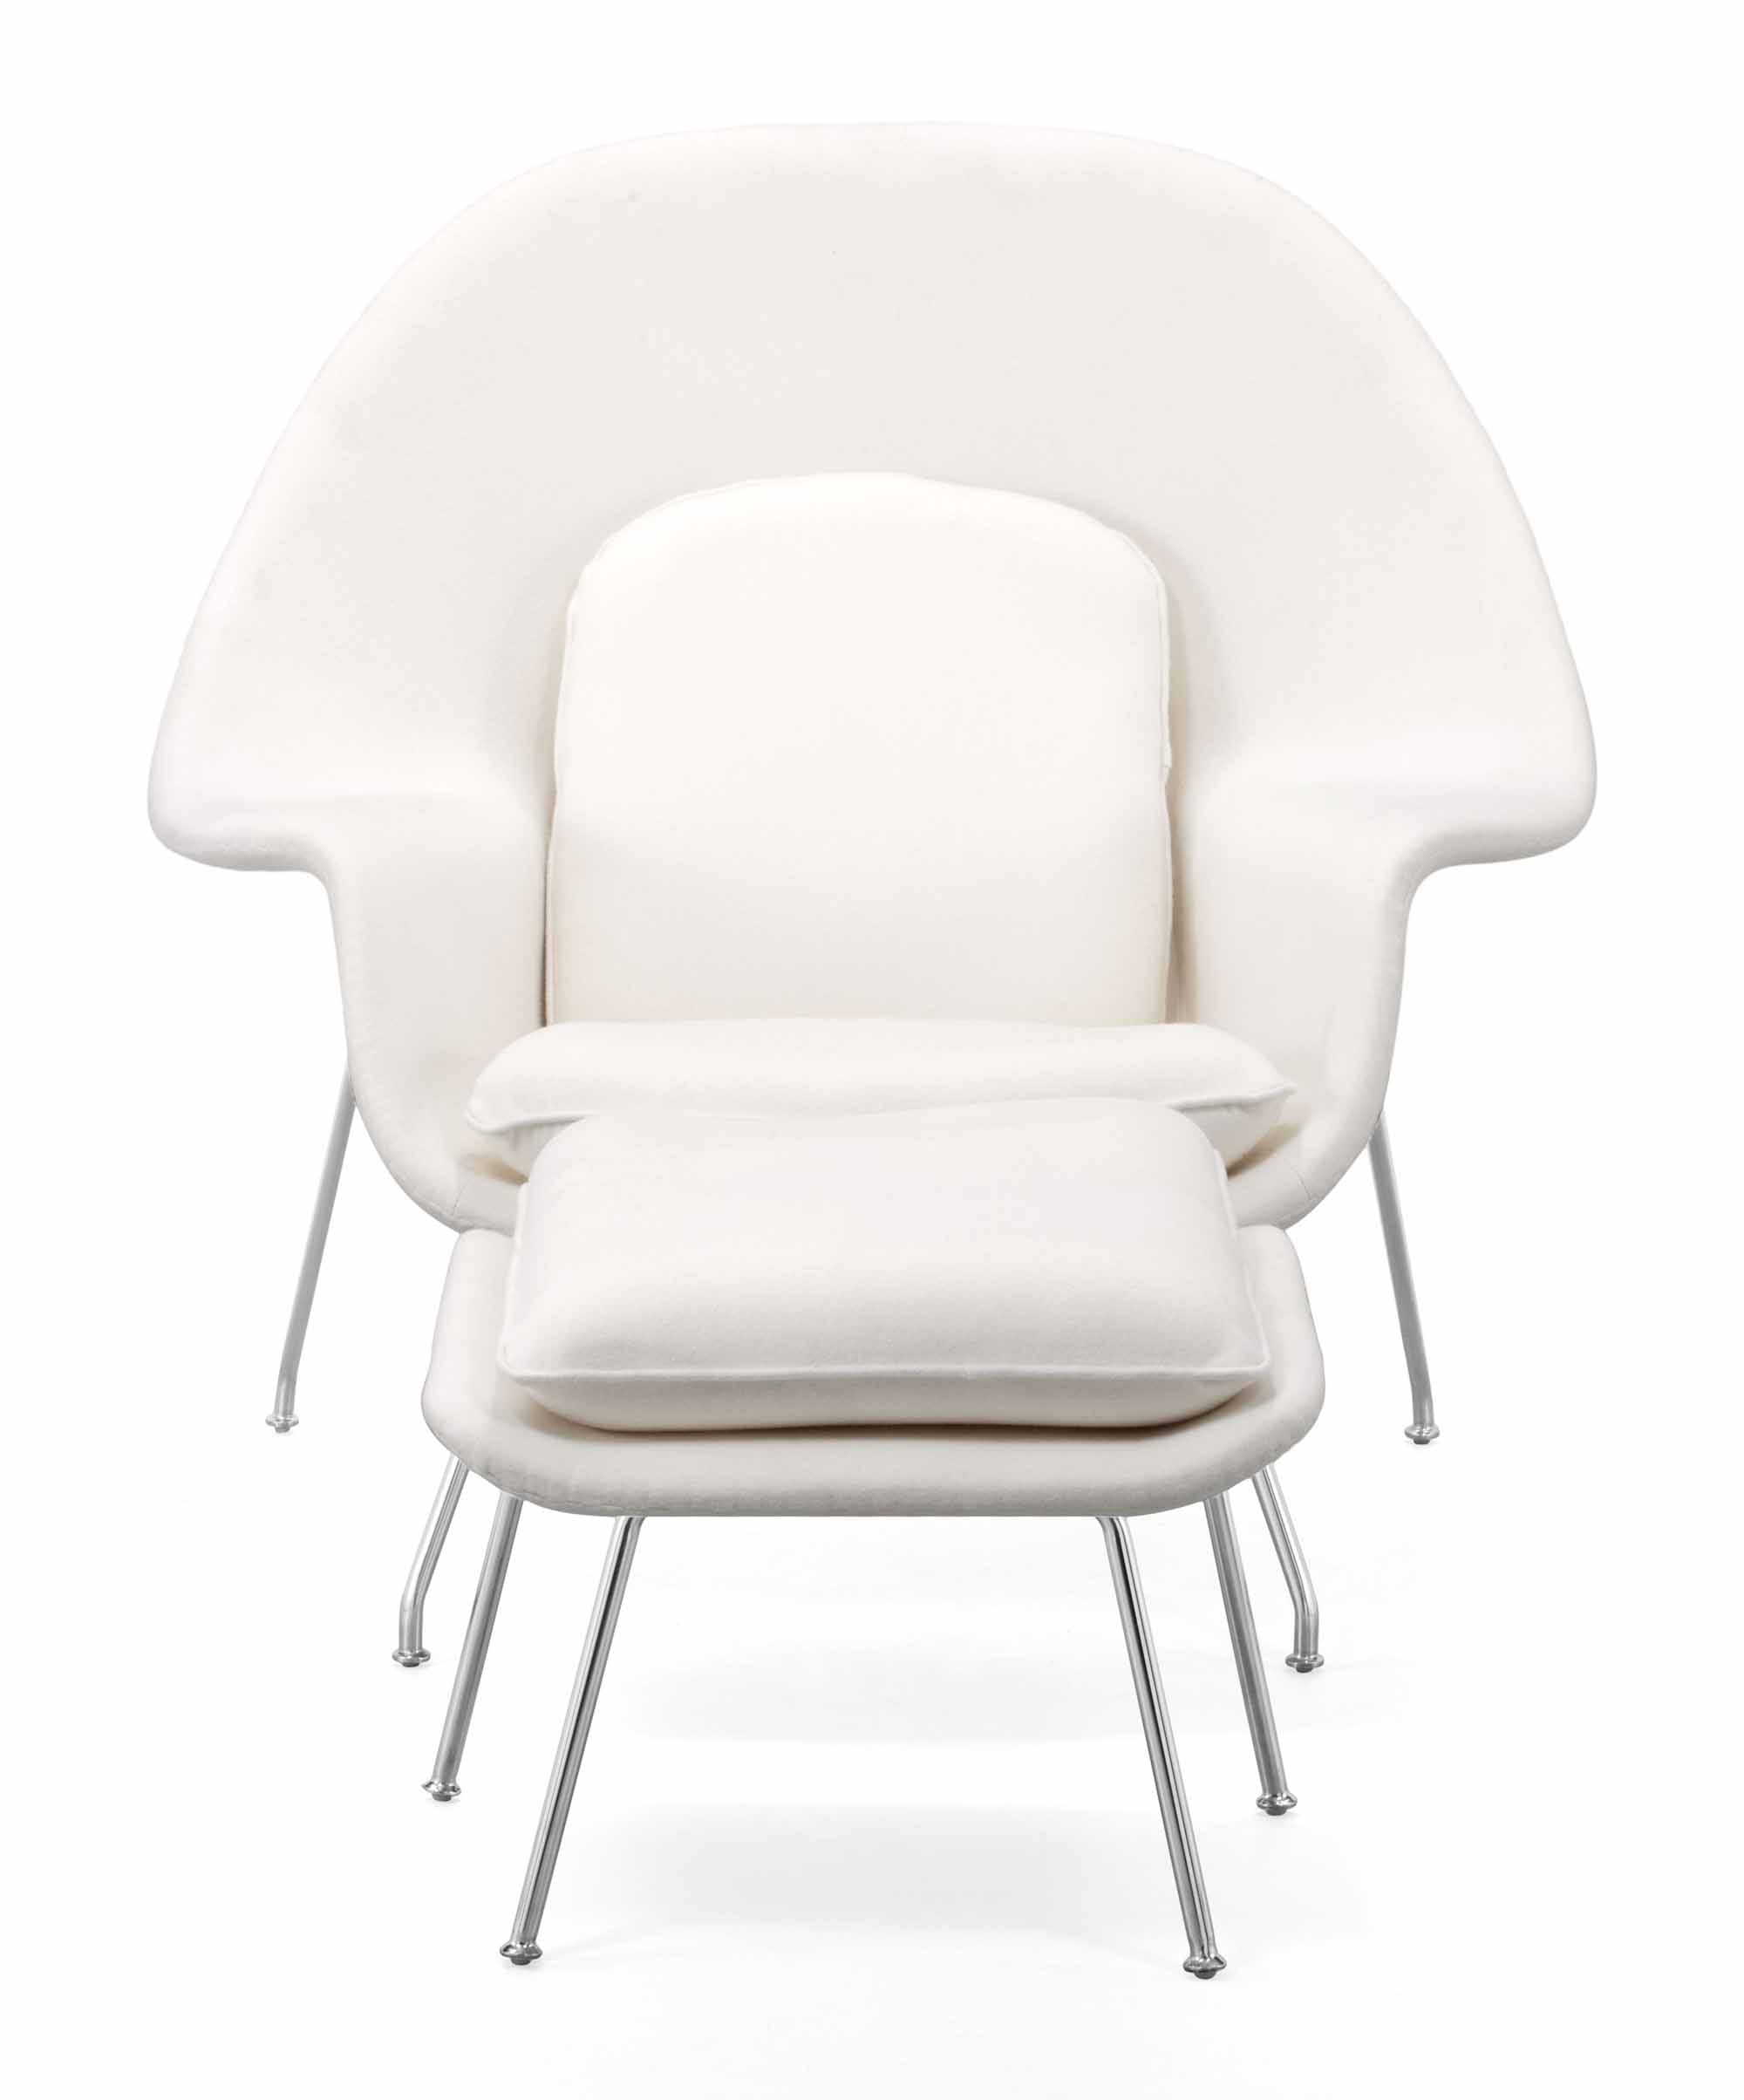 Nursery Chair And Ottoman White by Zuo Modern